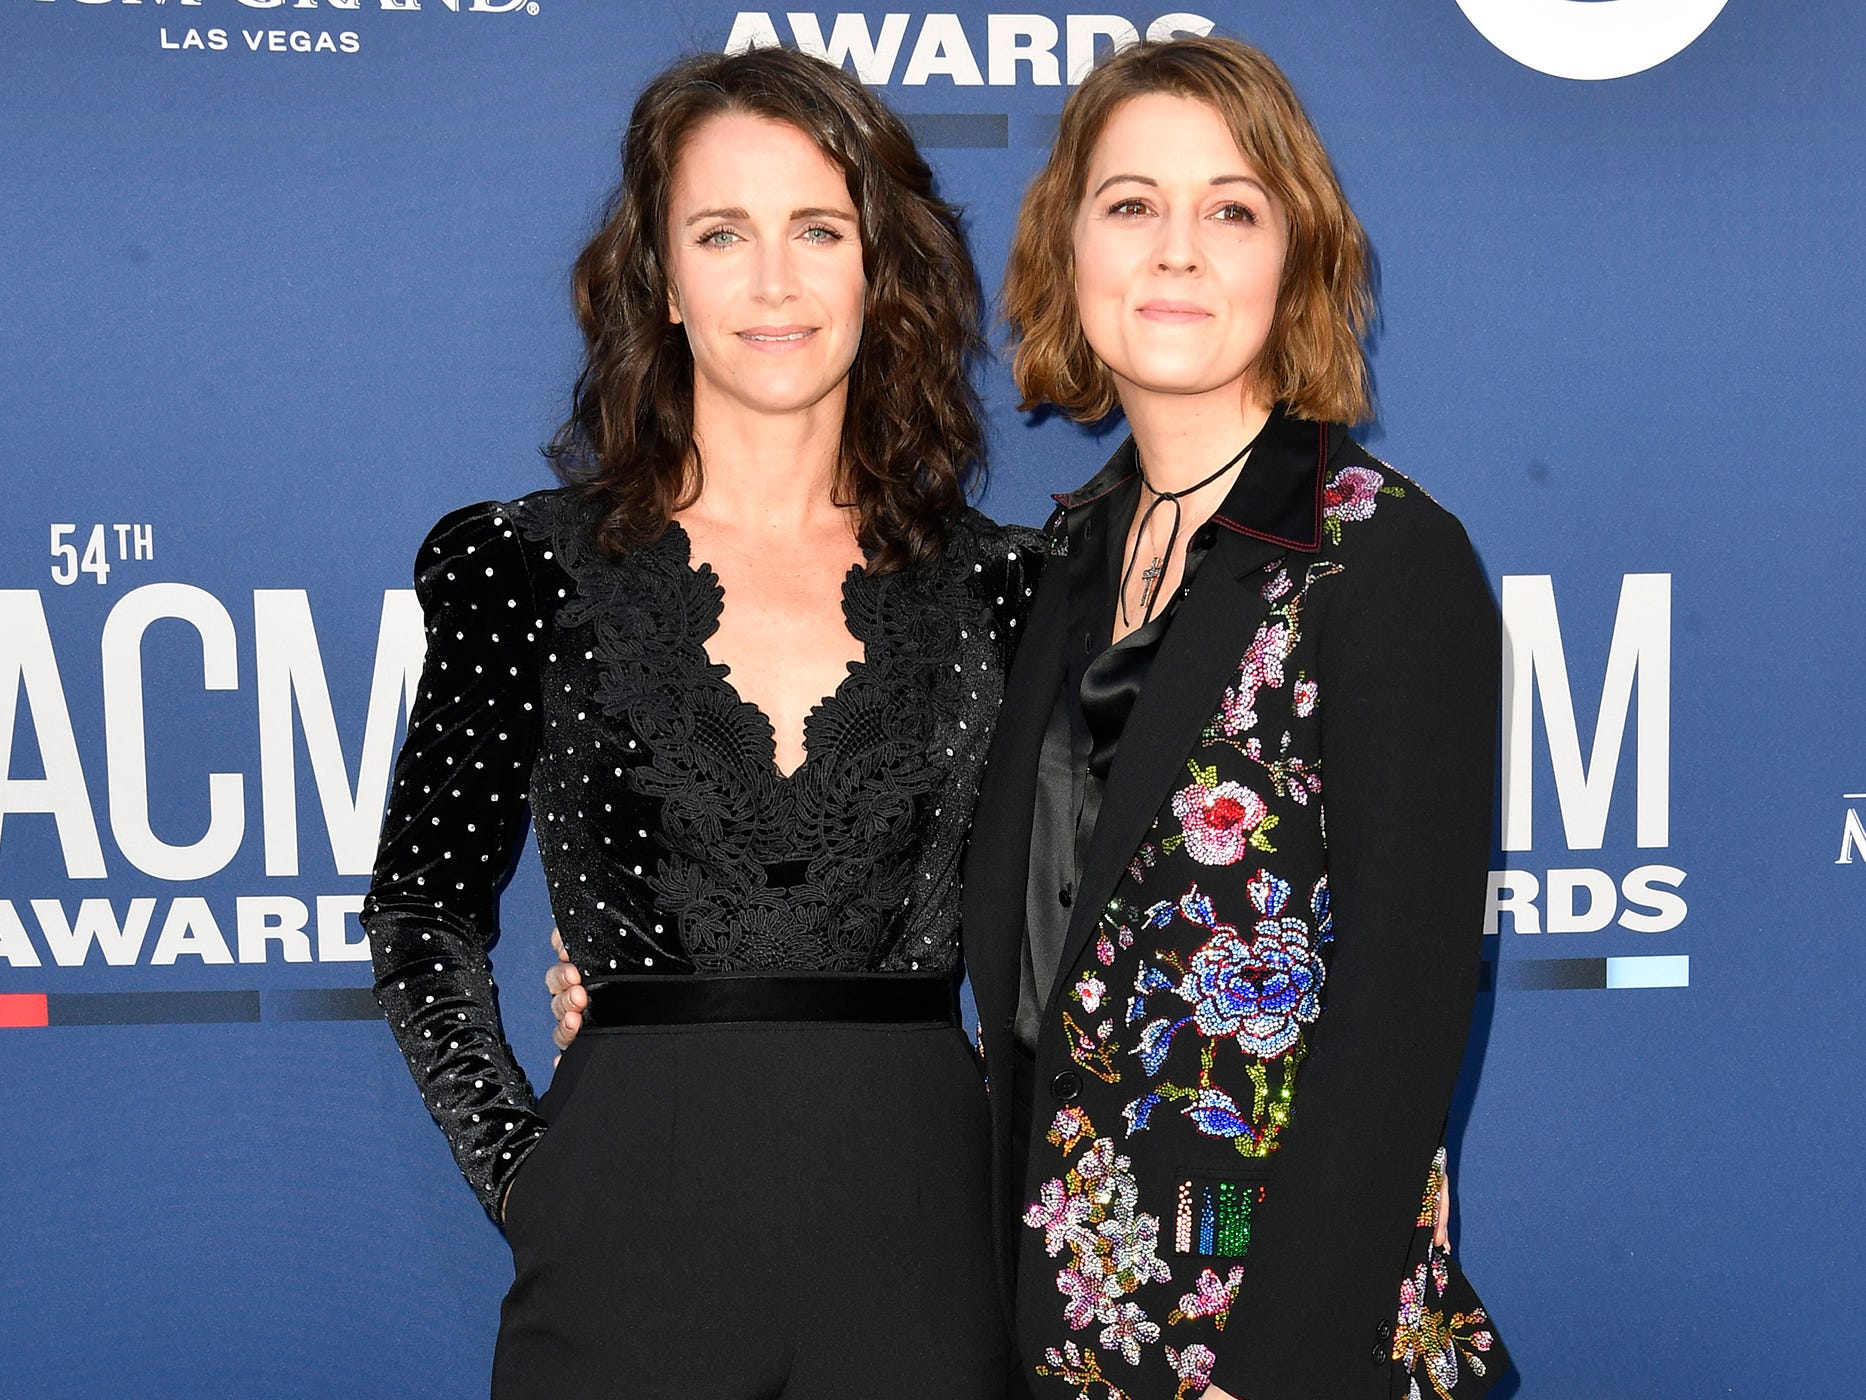 Catherine Shepherd, left, with Brandi Carlile, walk the red carpet at the 54TH Academy of Country Music Awards Sunday, April 7, 2019, in Las Vegas, Nev.